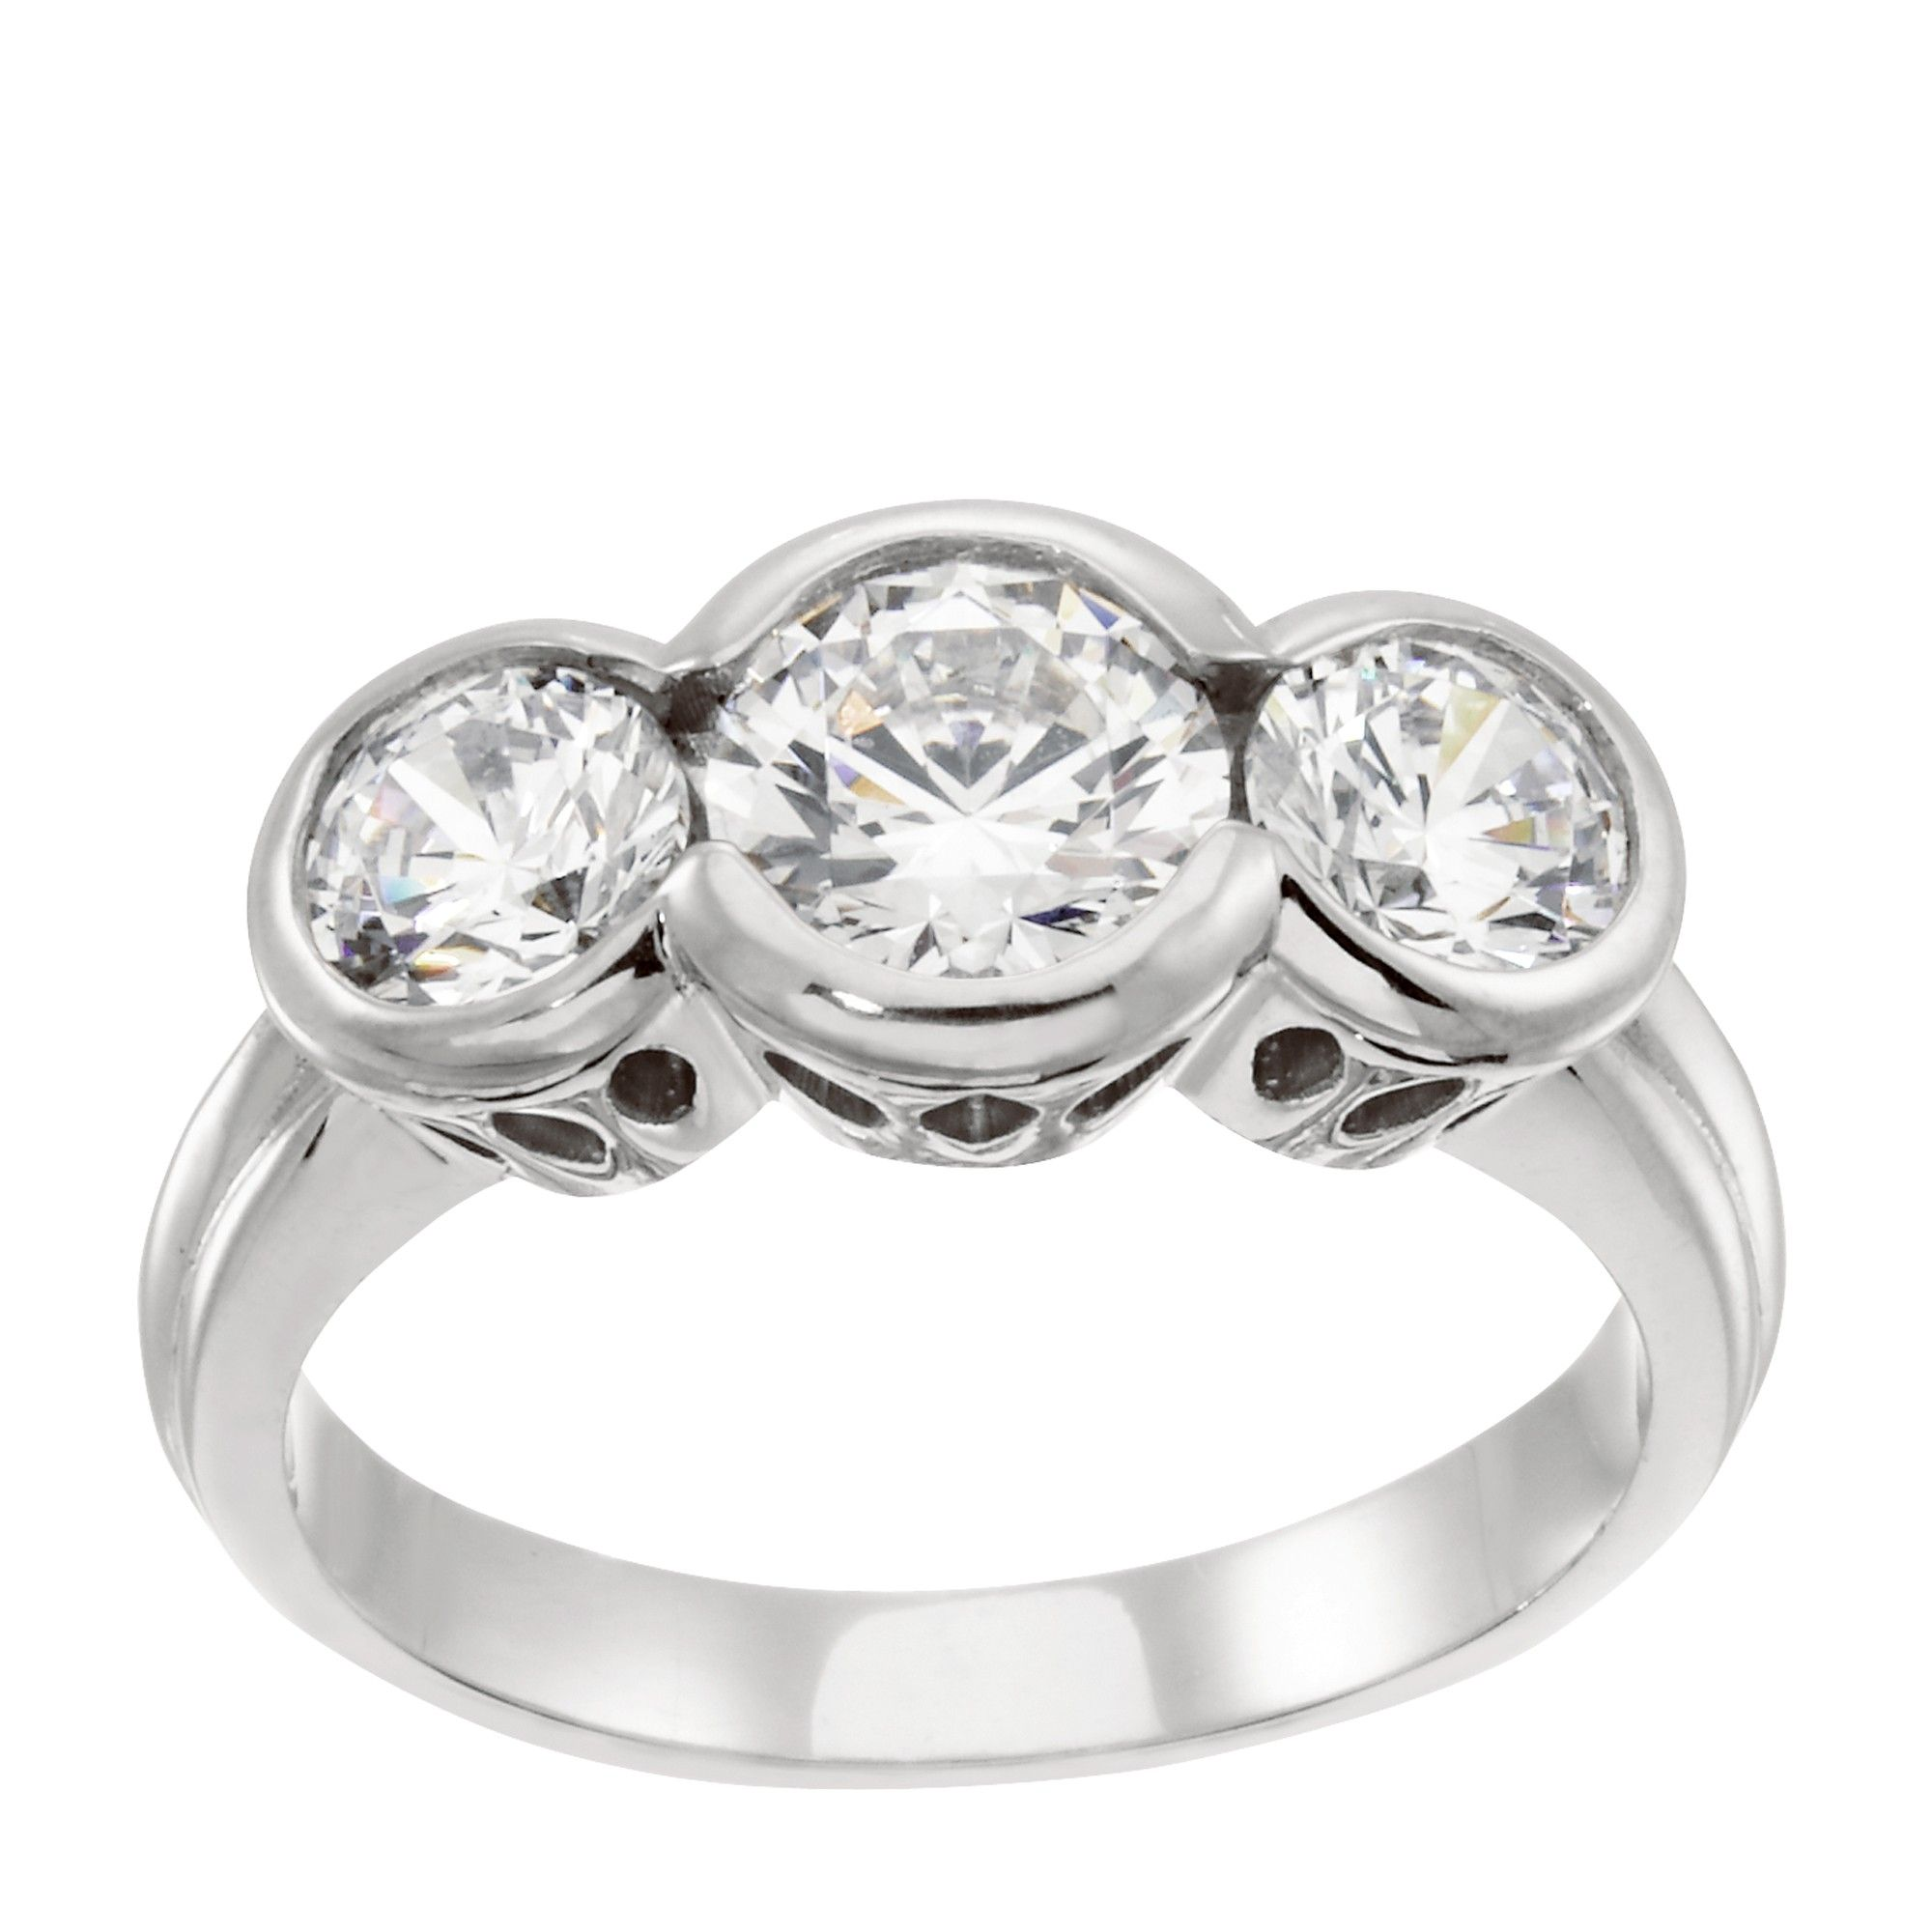 brighton - one of our featured rings in our three stone engagement